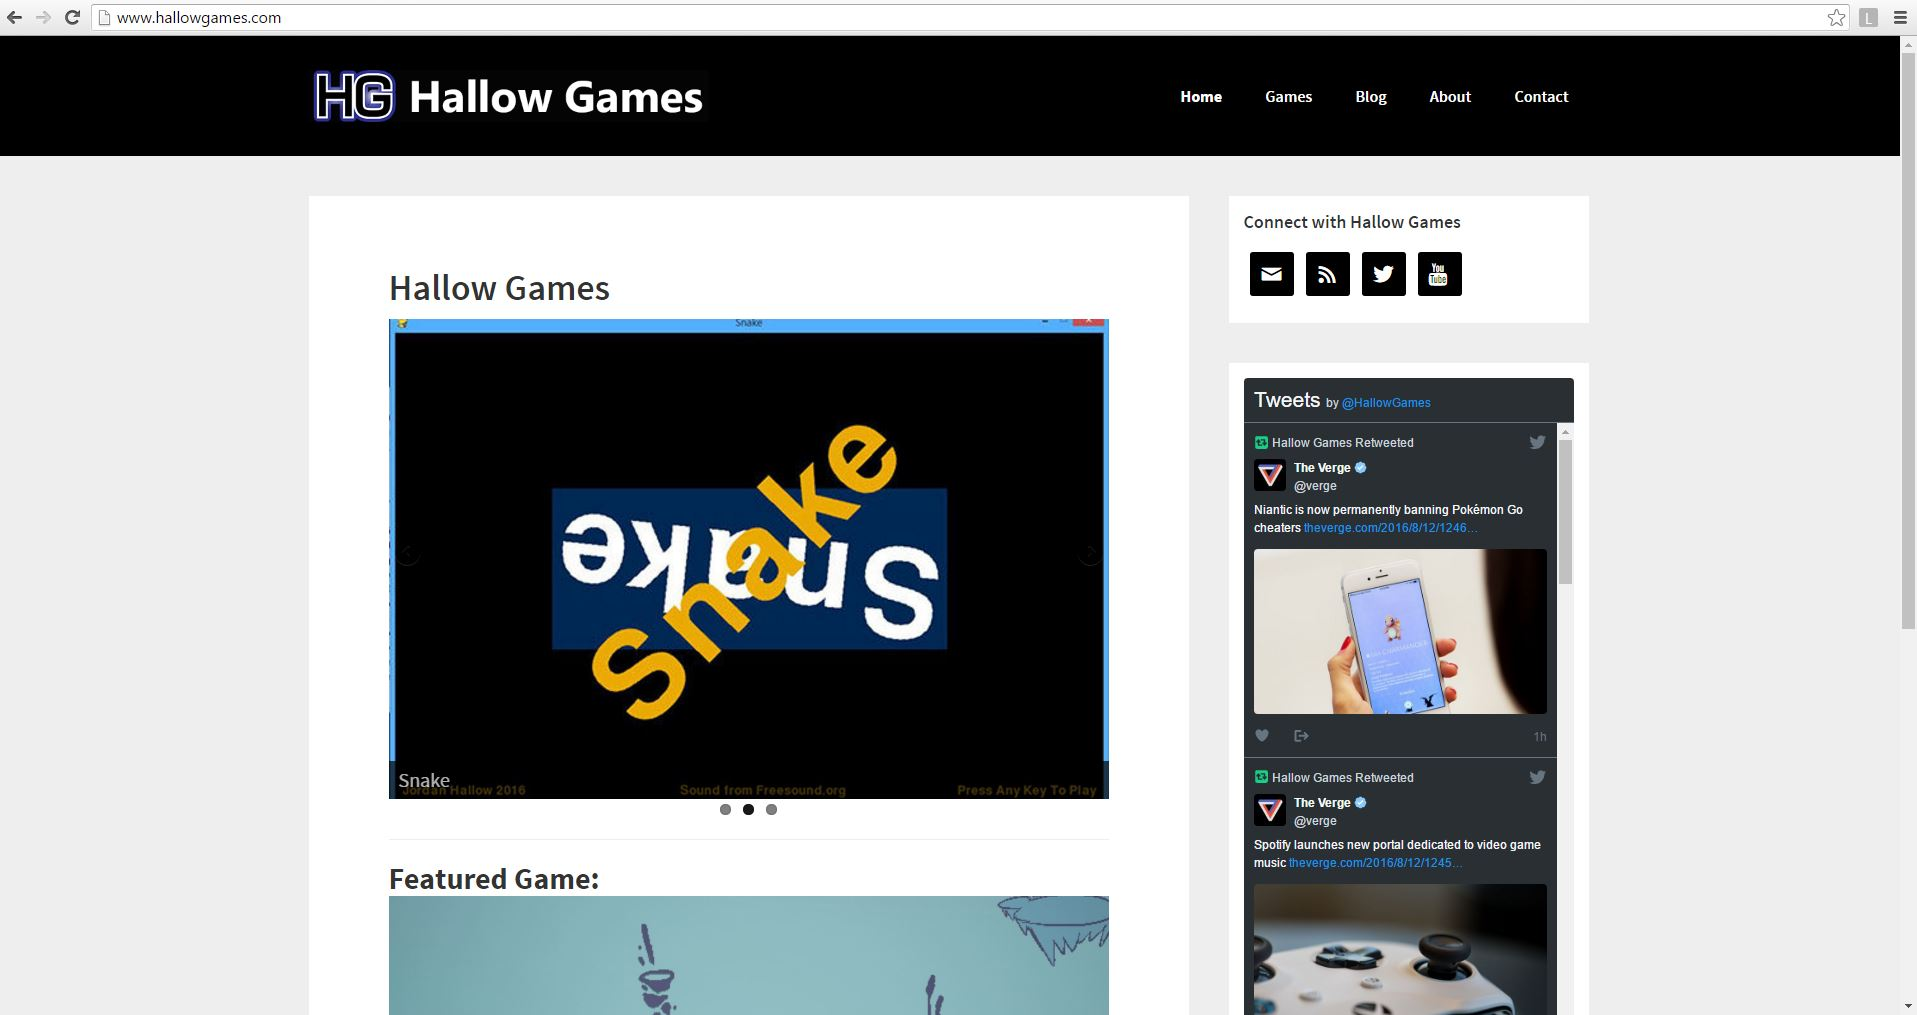 Hallow Games homepage